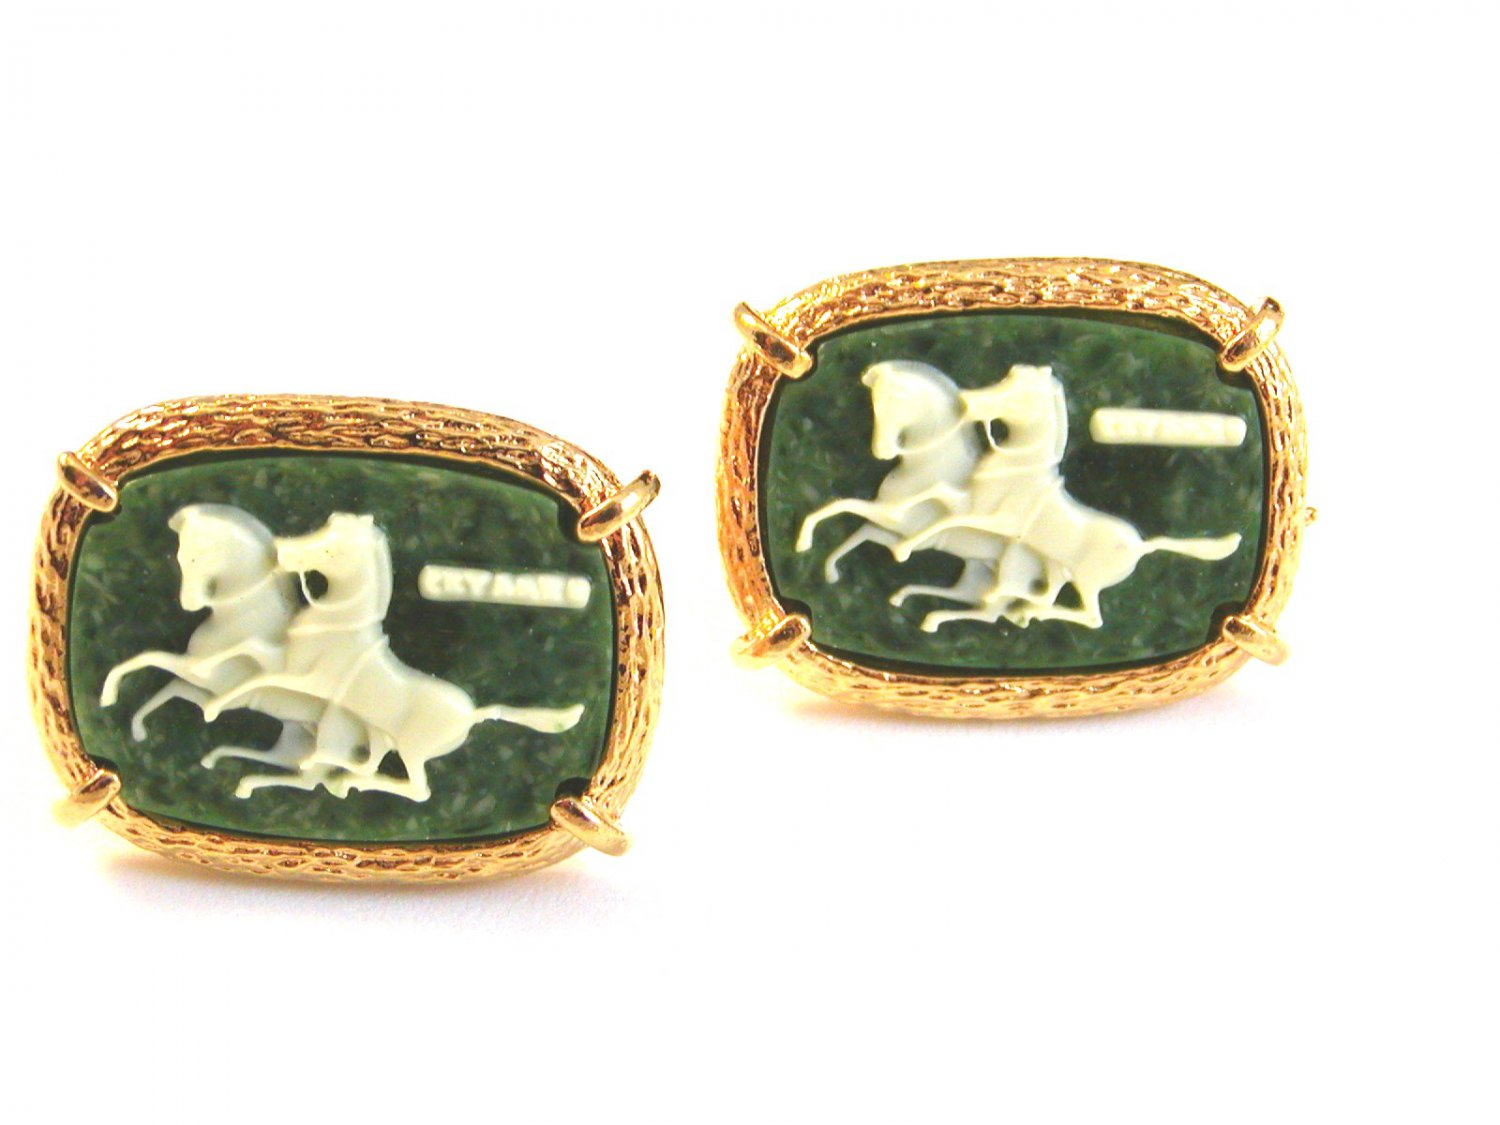 1970's Gold Tone & Green Cameo of 2 Horses Cufflinks